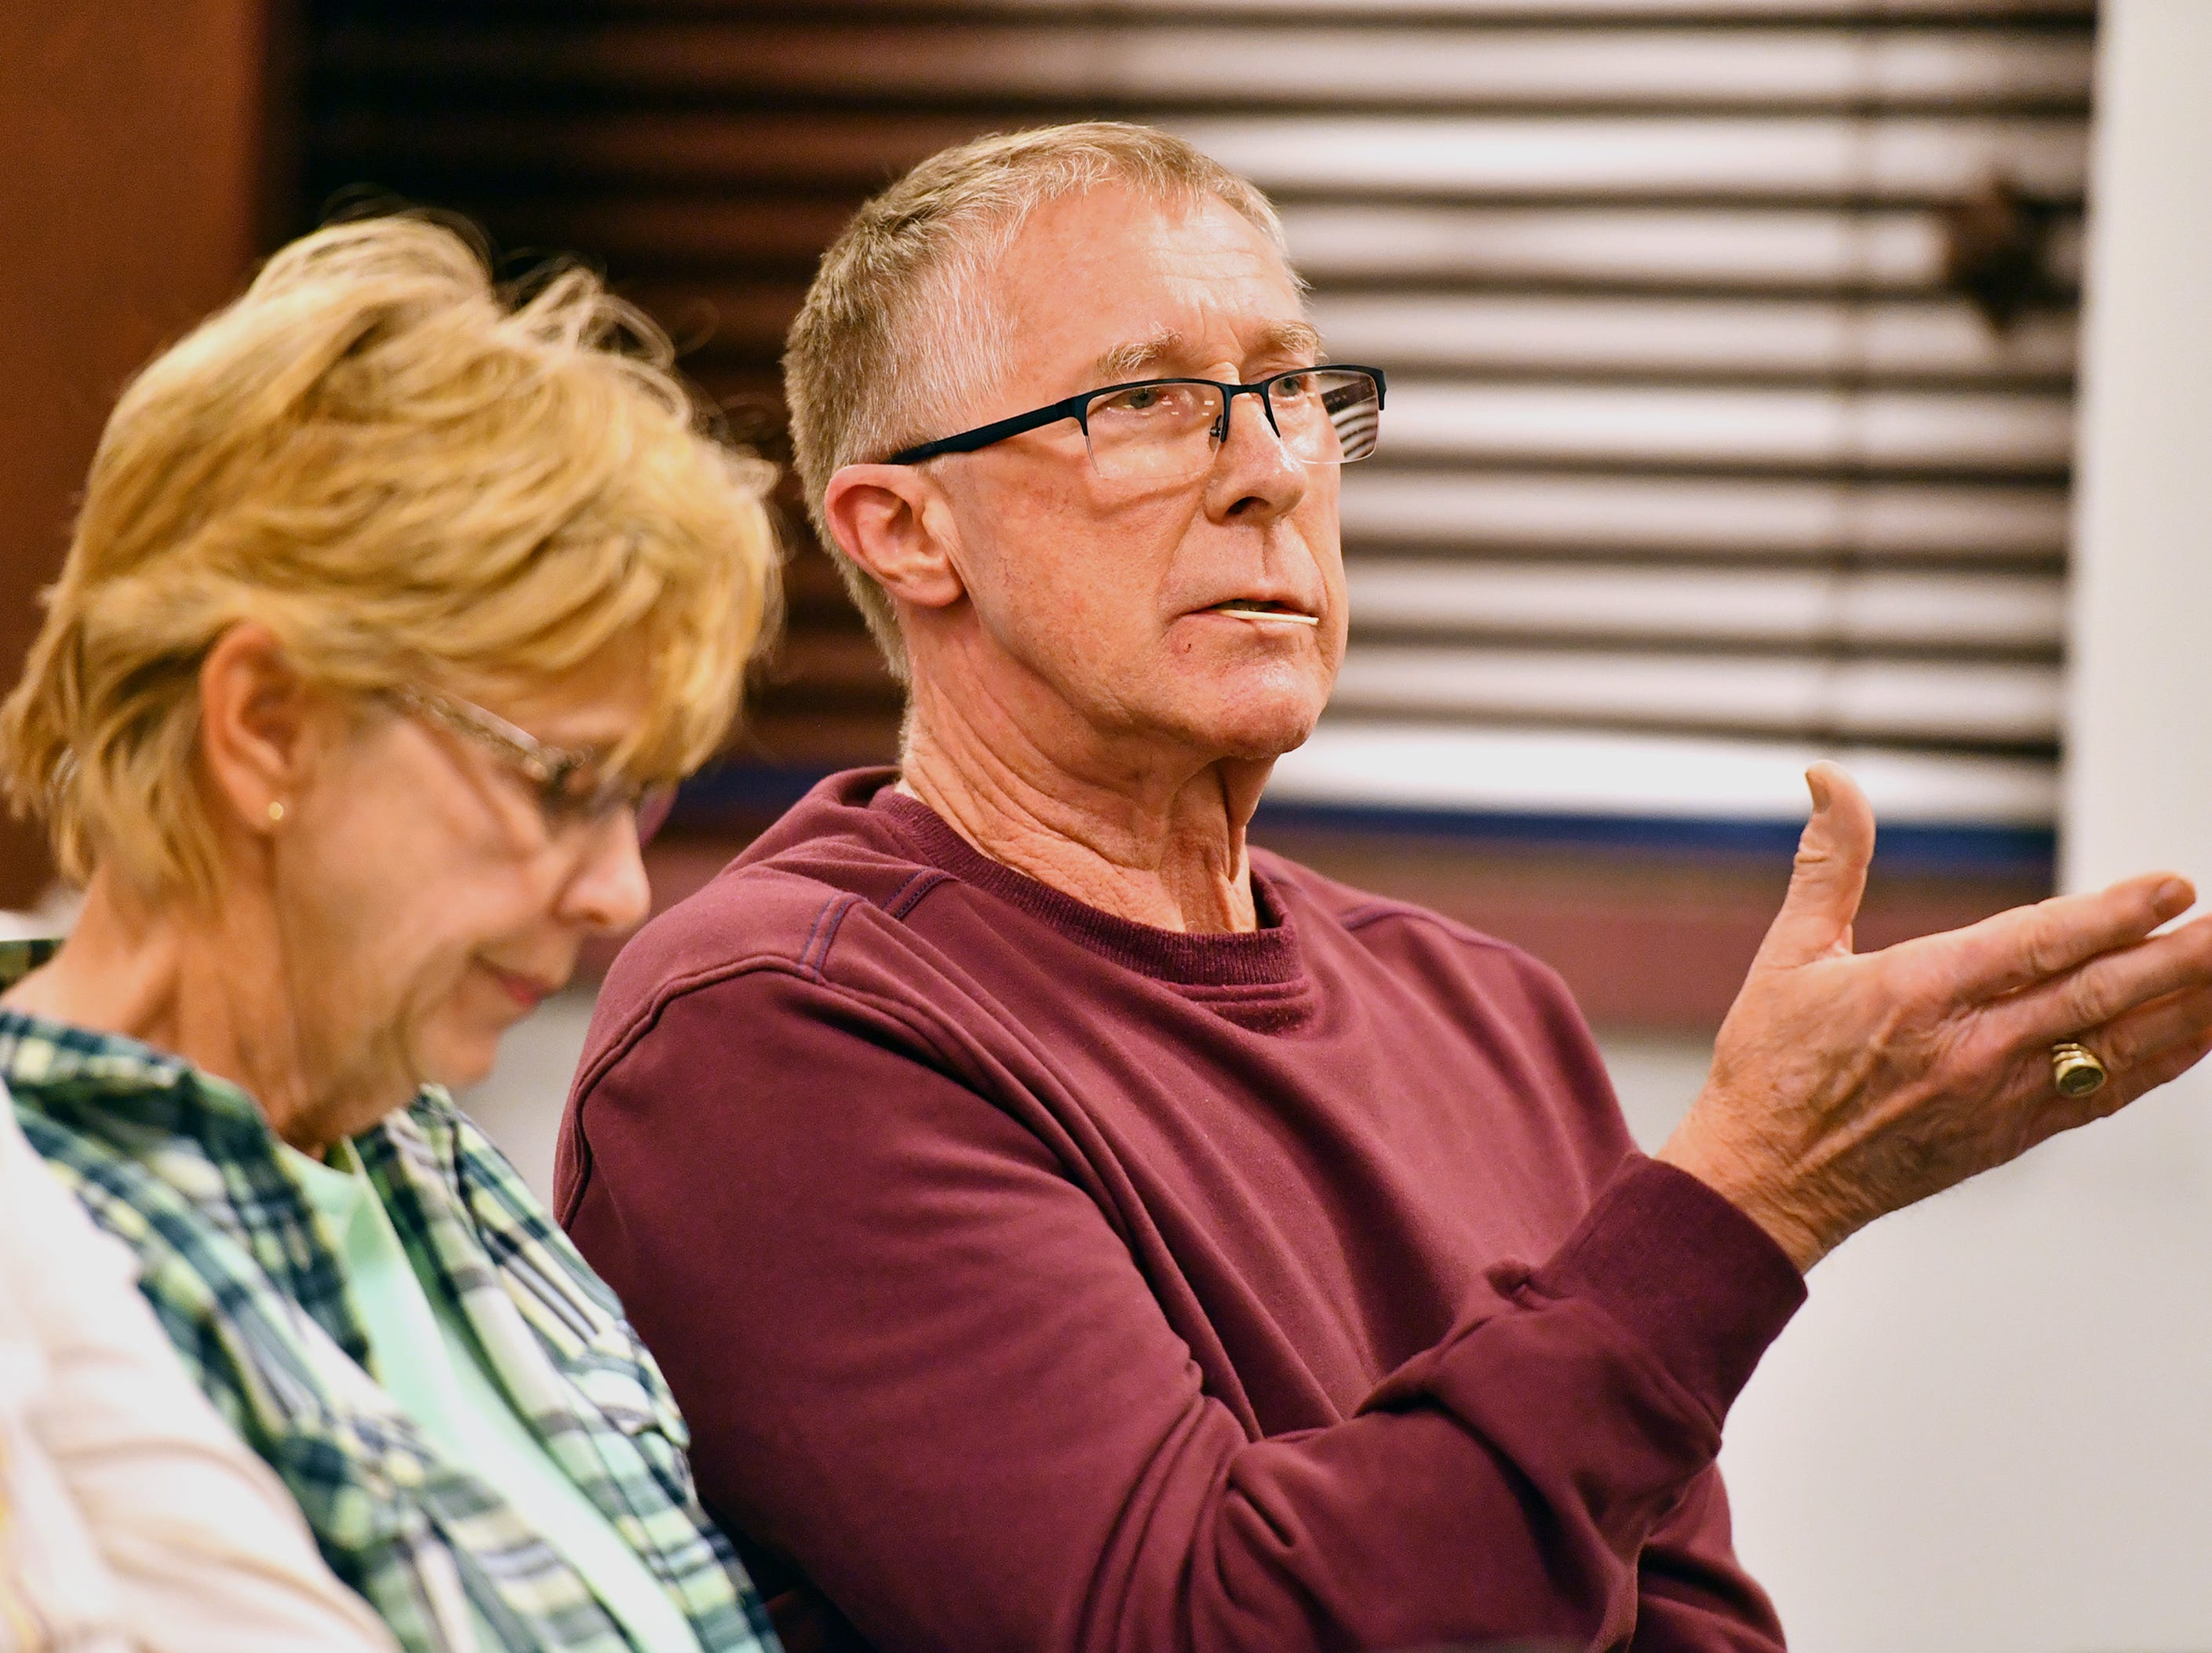 Dottie Stermer, left, listens as Larry Lehman, both of North Codorus Township, speaks during the public comment portion of Southwestern Regional Police Department's monthly board meeting at the station in Heidelberg Township, Wednesday, April 10, 2019. Dawn J. Sagert photo